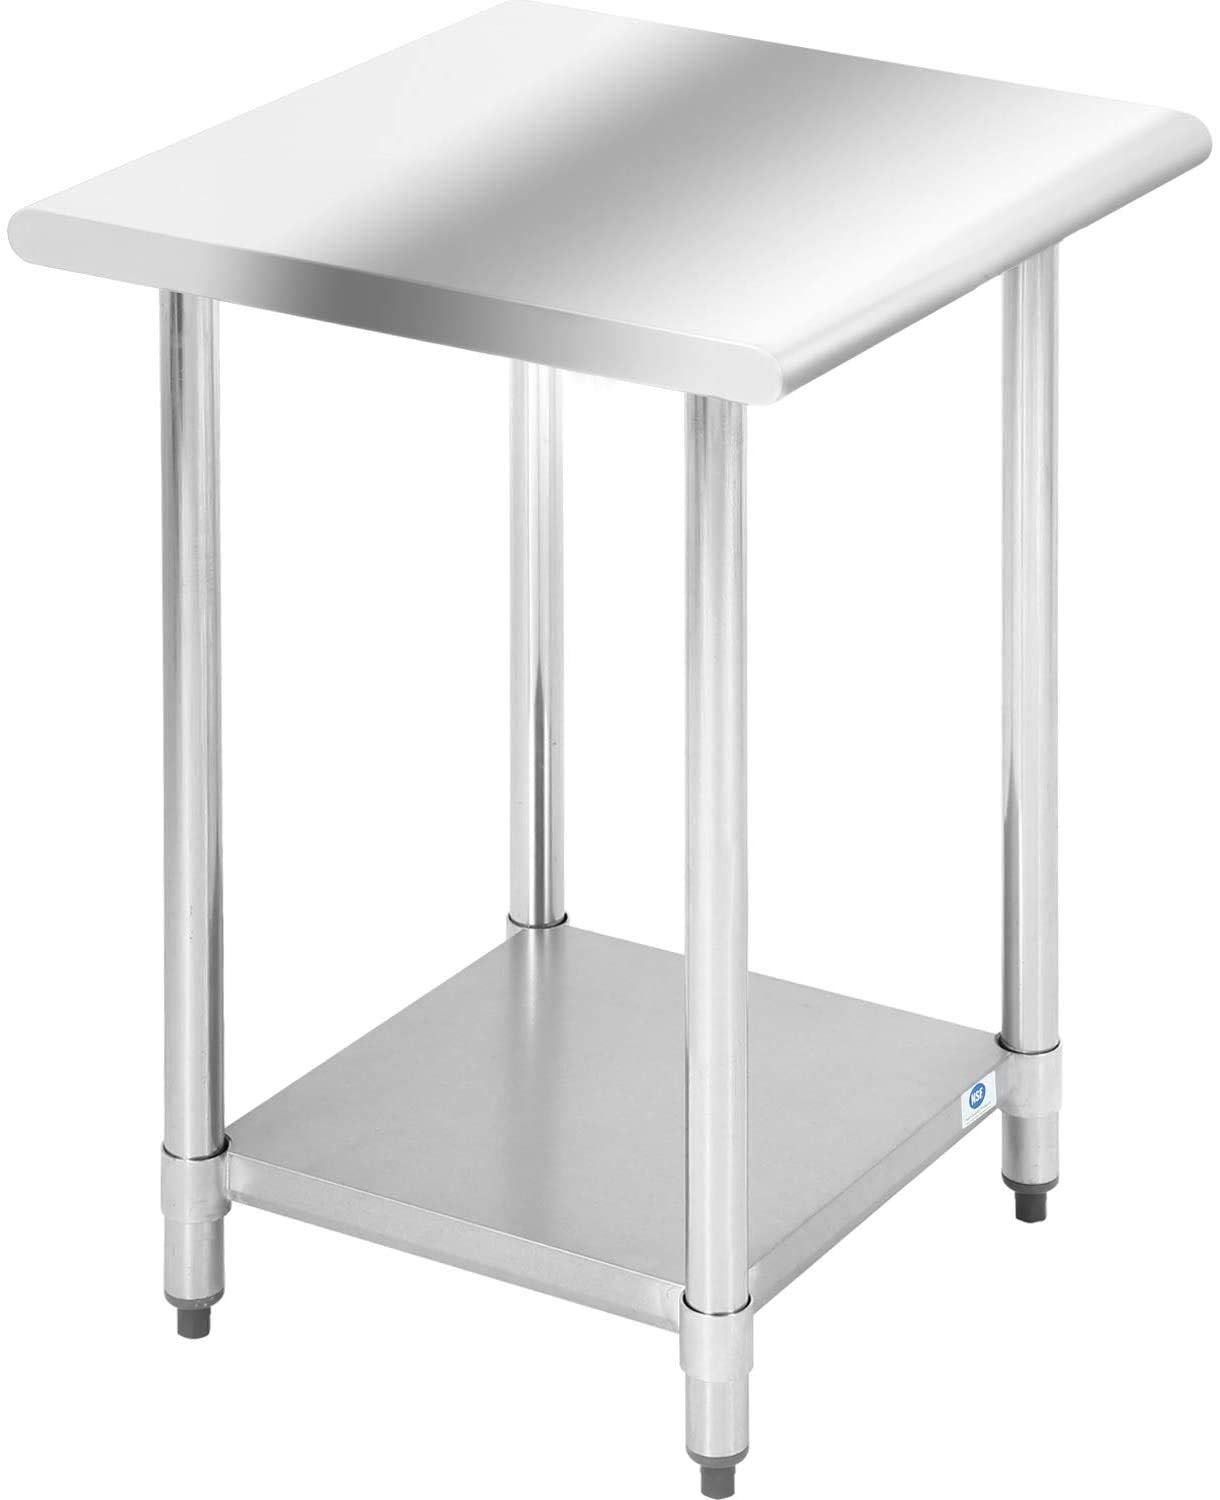 Kitchen Work Table Stainless Steel Commercial NSF Metal Scratch OFFicial store price